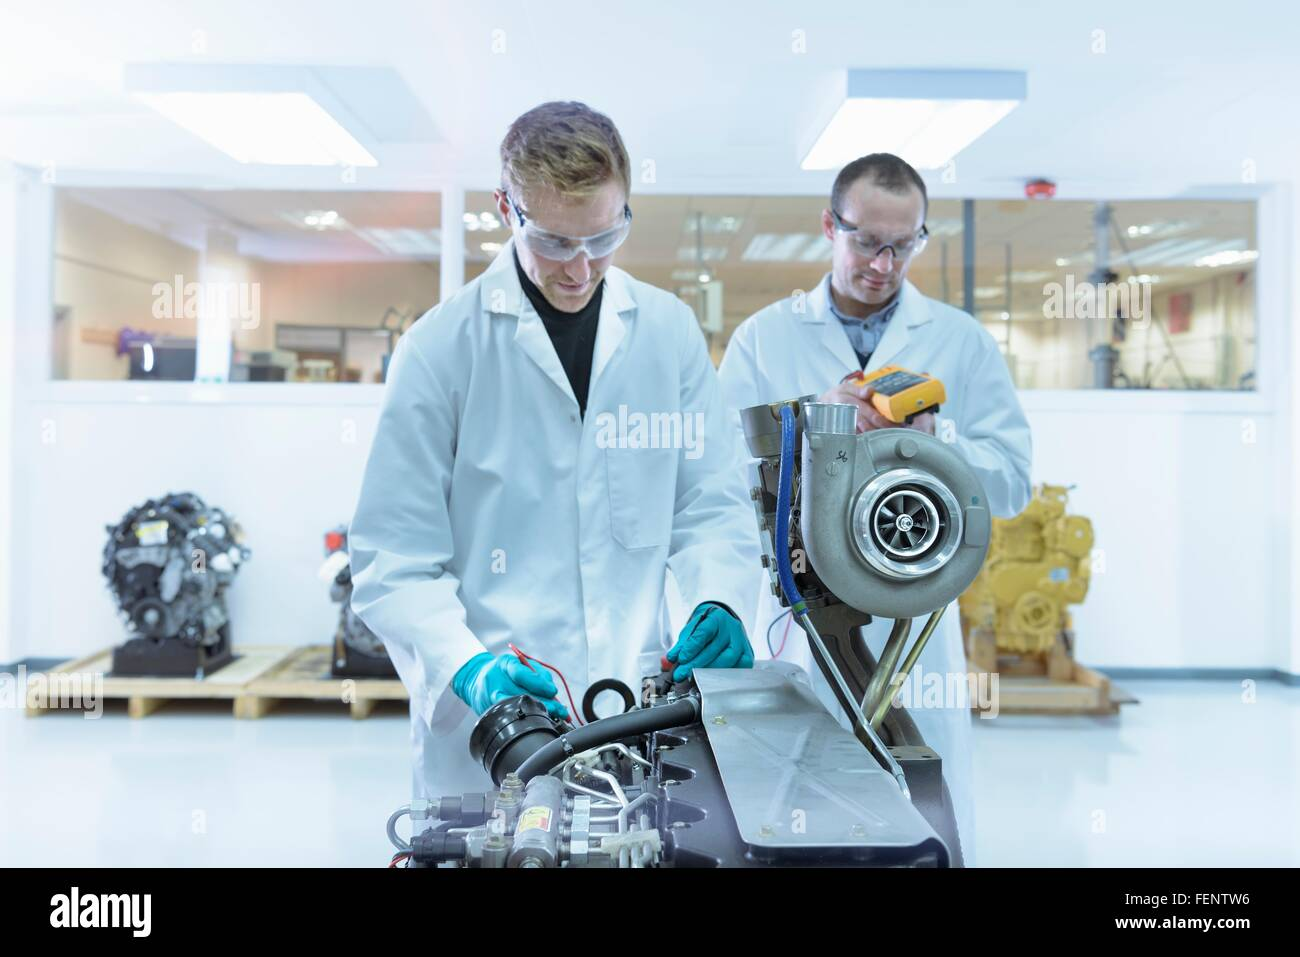 Scientists working in turbo charger automotive research laboratory - Stock Image